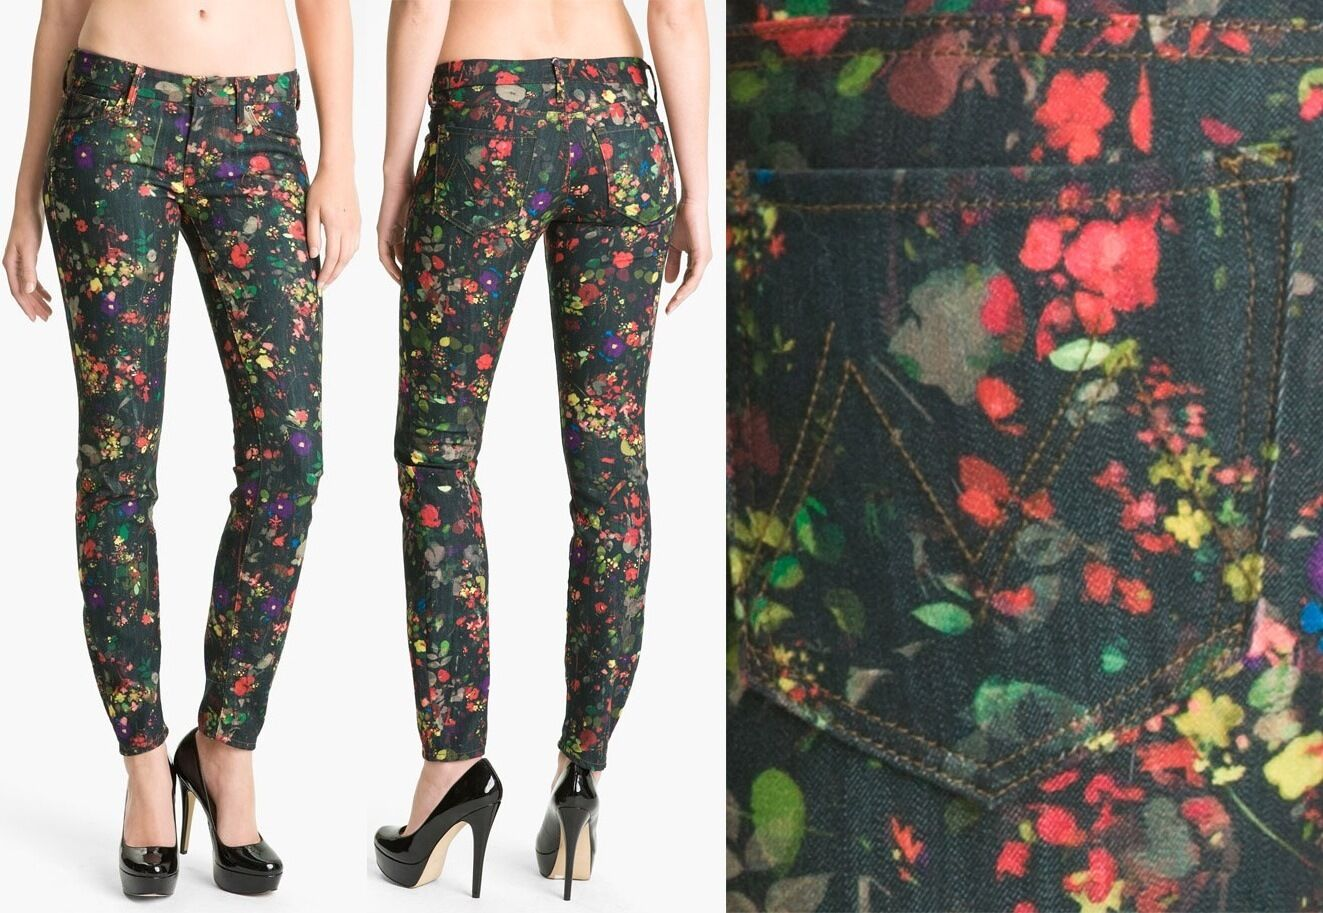 295 MOTHER DENIM The Looker Zip Ankle   MAGICAL FOREST   Floral JEANS ( 24 )